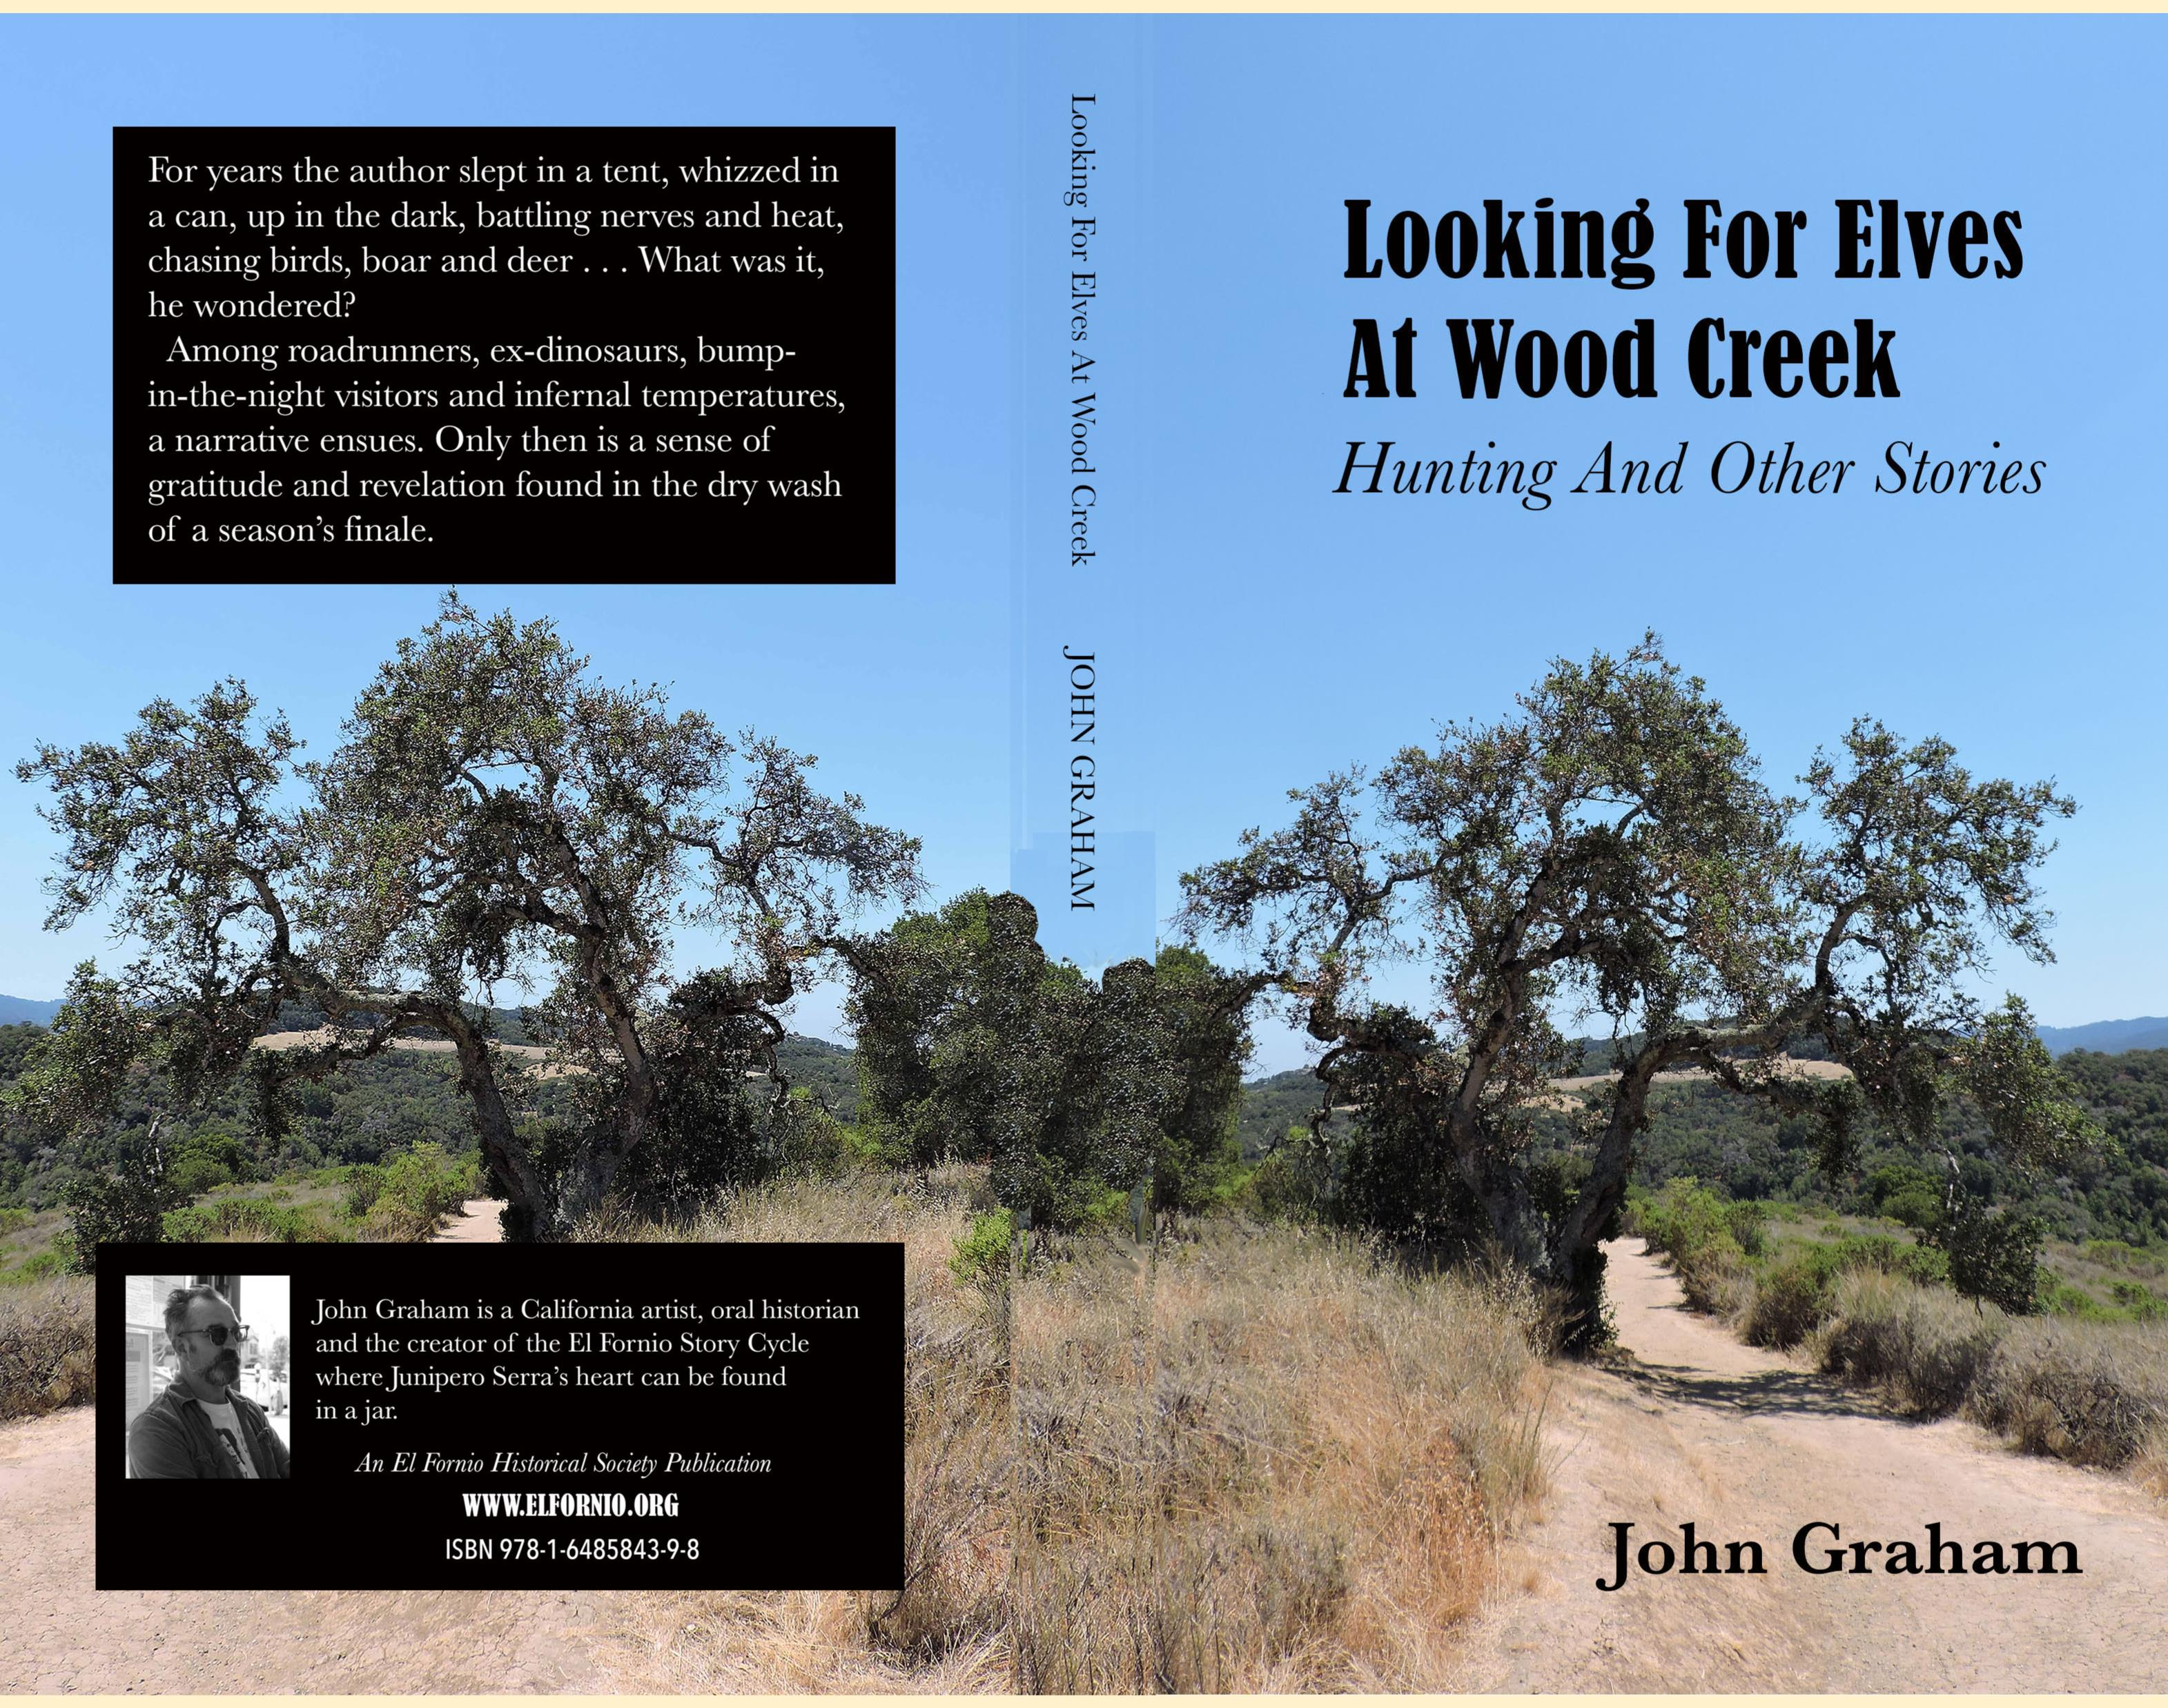 Looking For Elves At Wood Creek: Hunting And Other Stories cover image